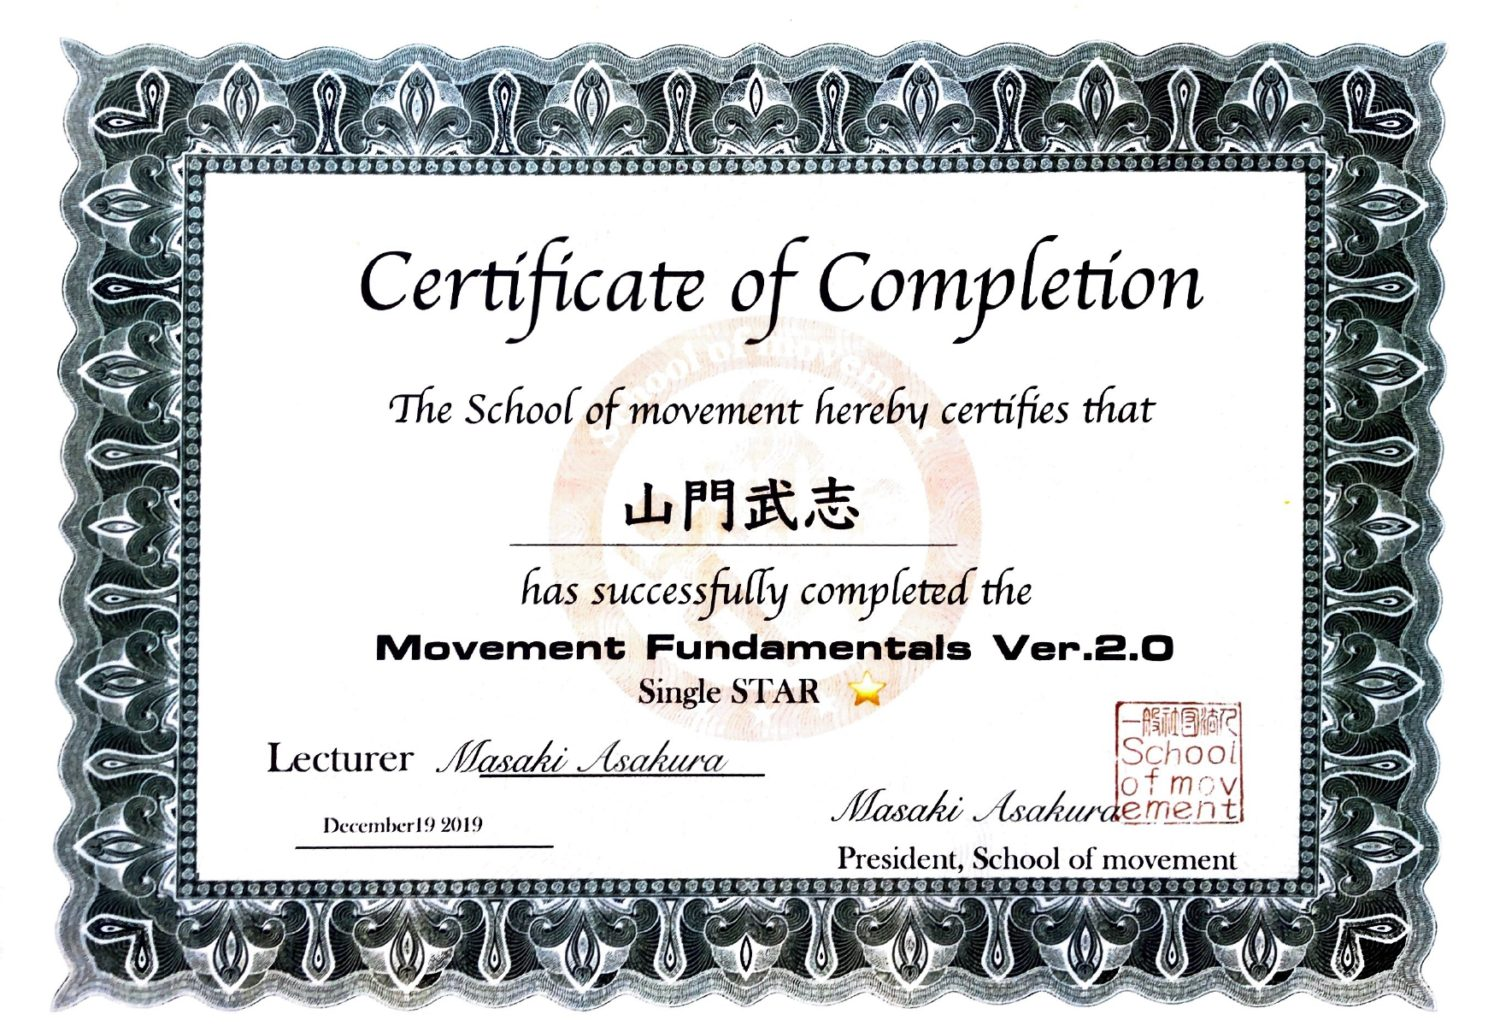 Movement Fundamentals ver.2.0 Single STAR